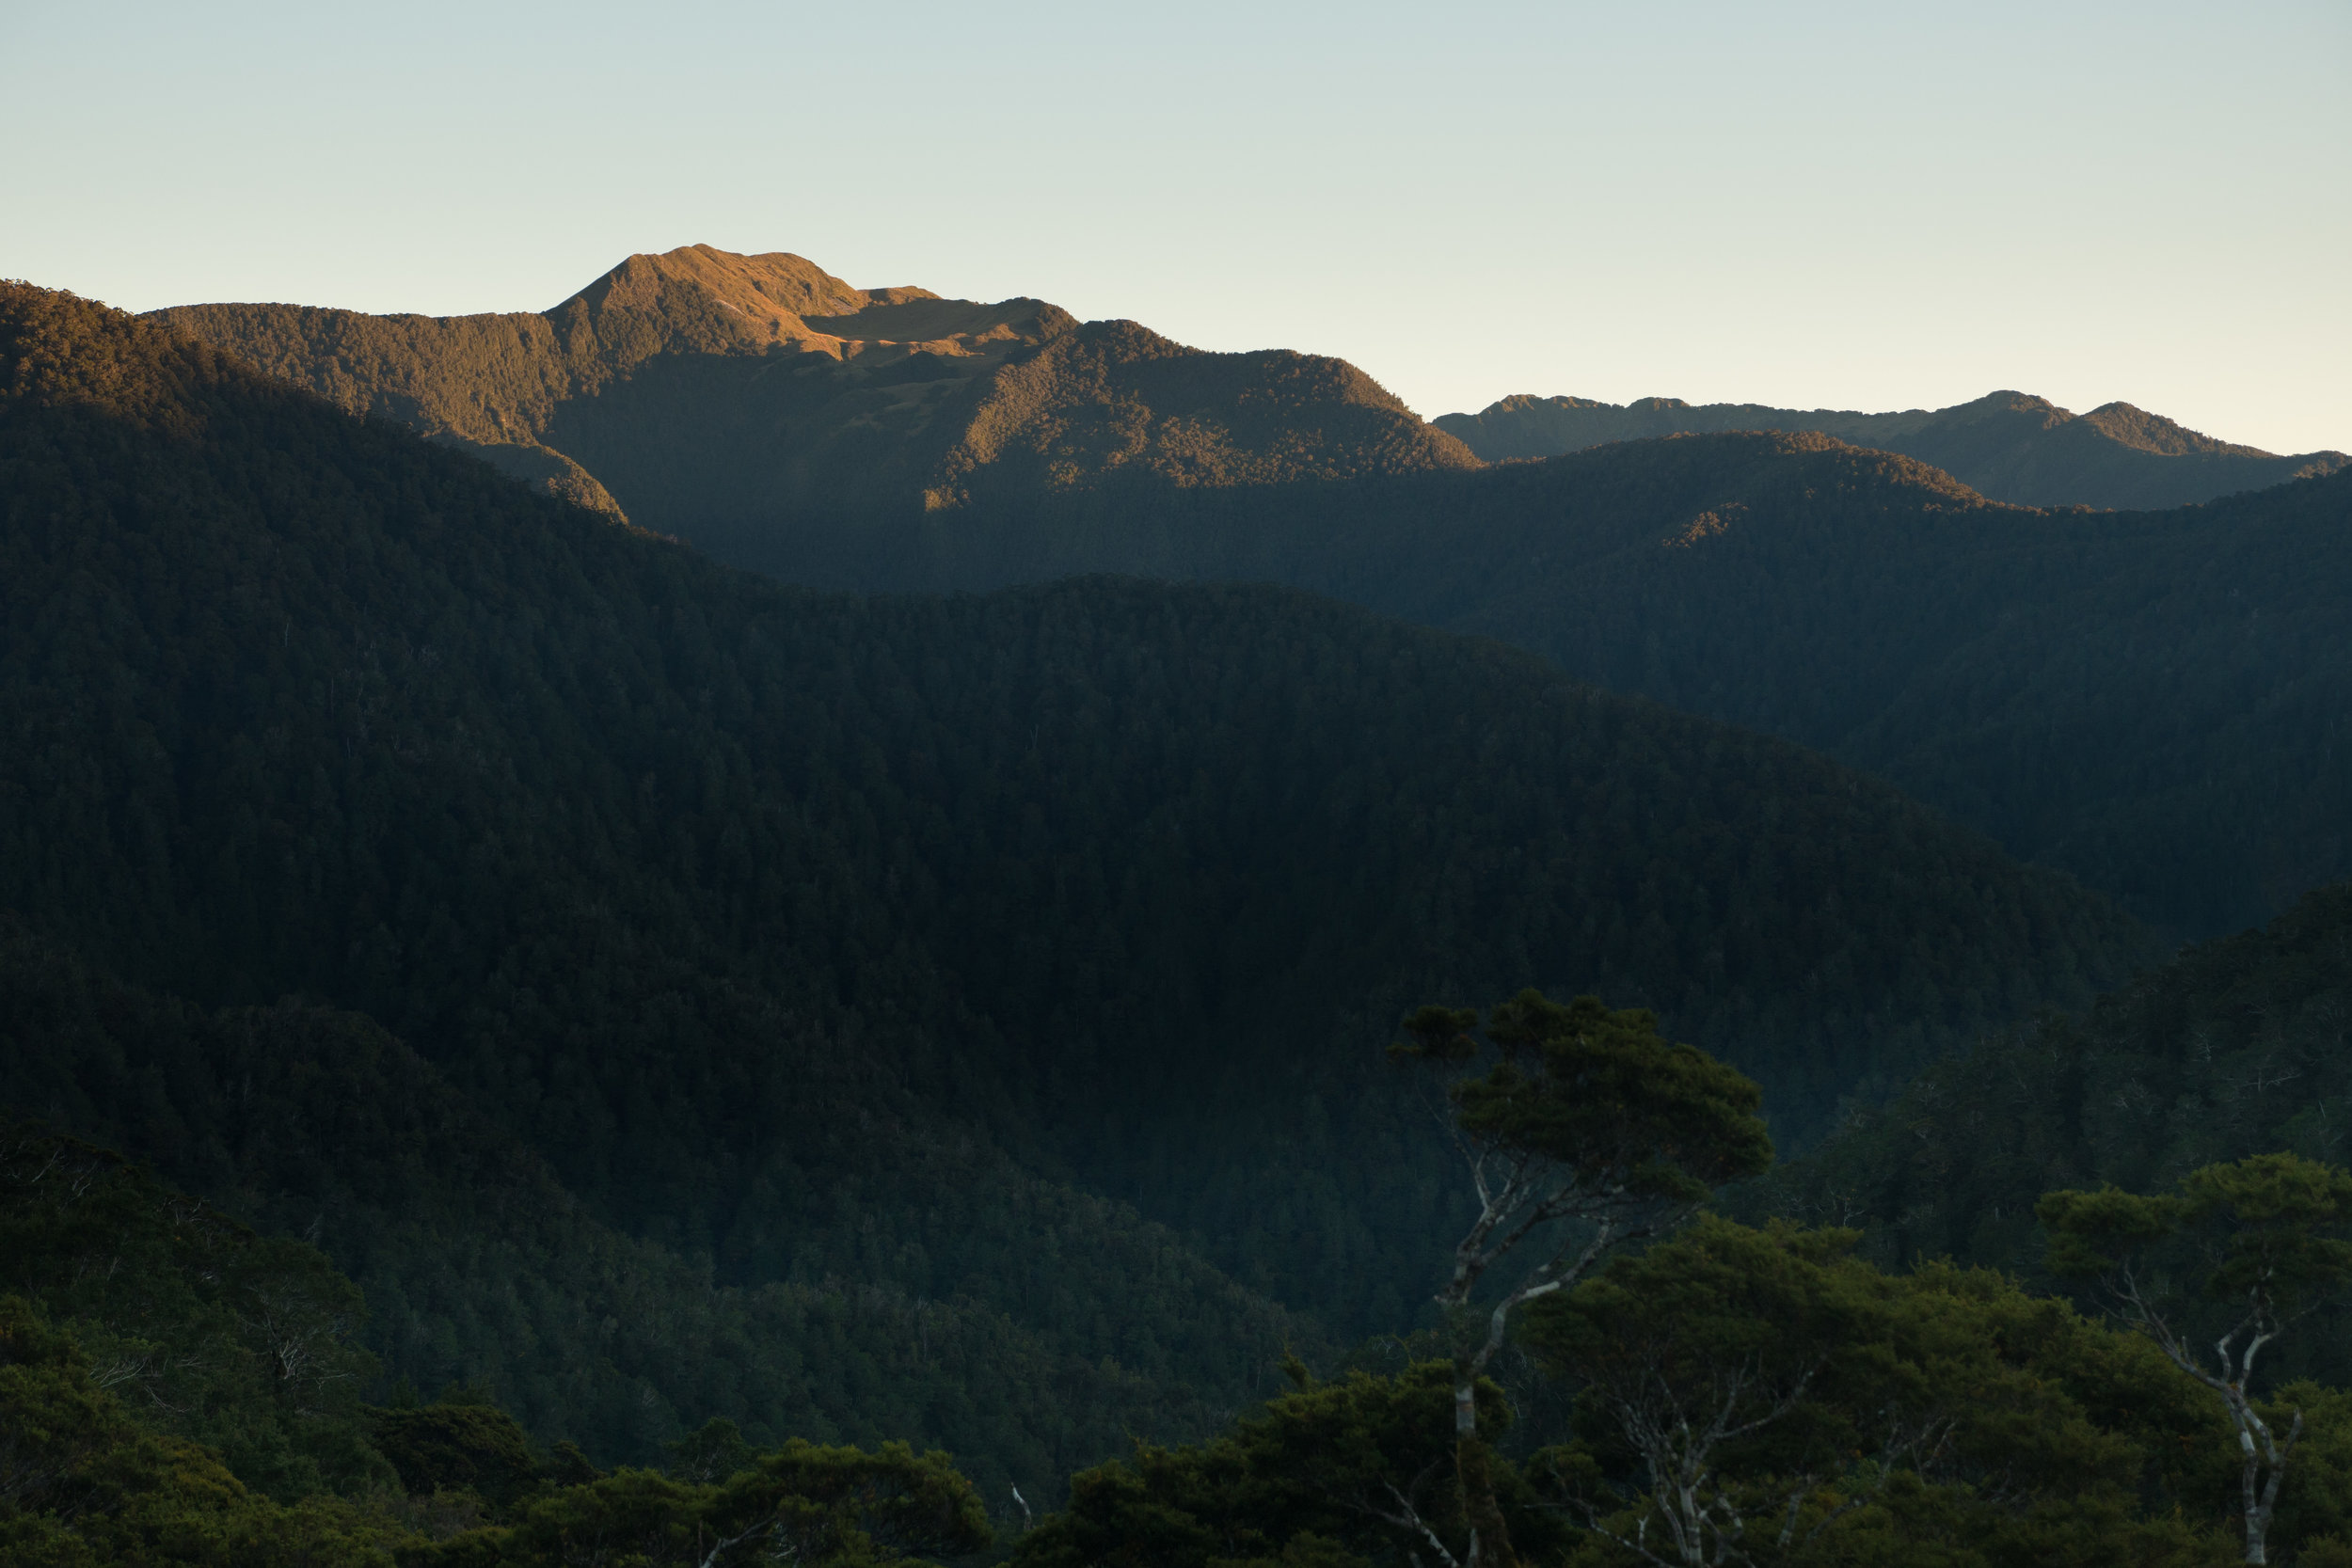 View from Lyell Hut